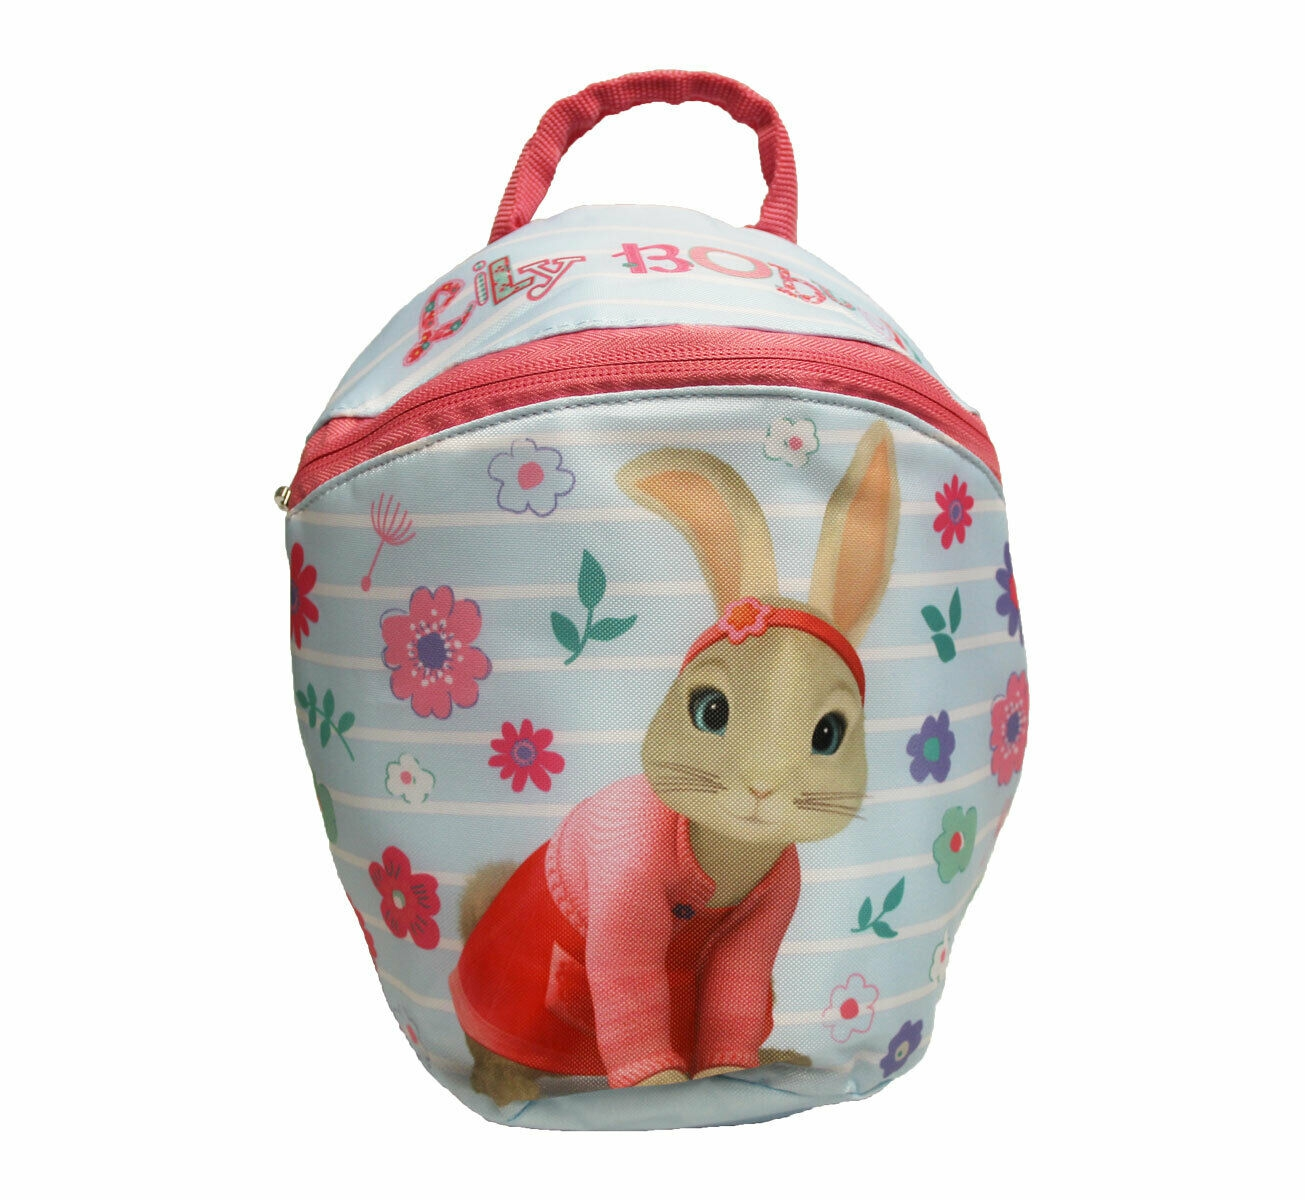 Peter Rabbit Girls Toddler Backpack with Reins School Bag Rucksack